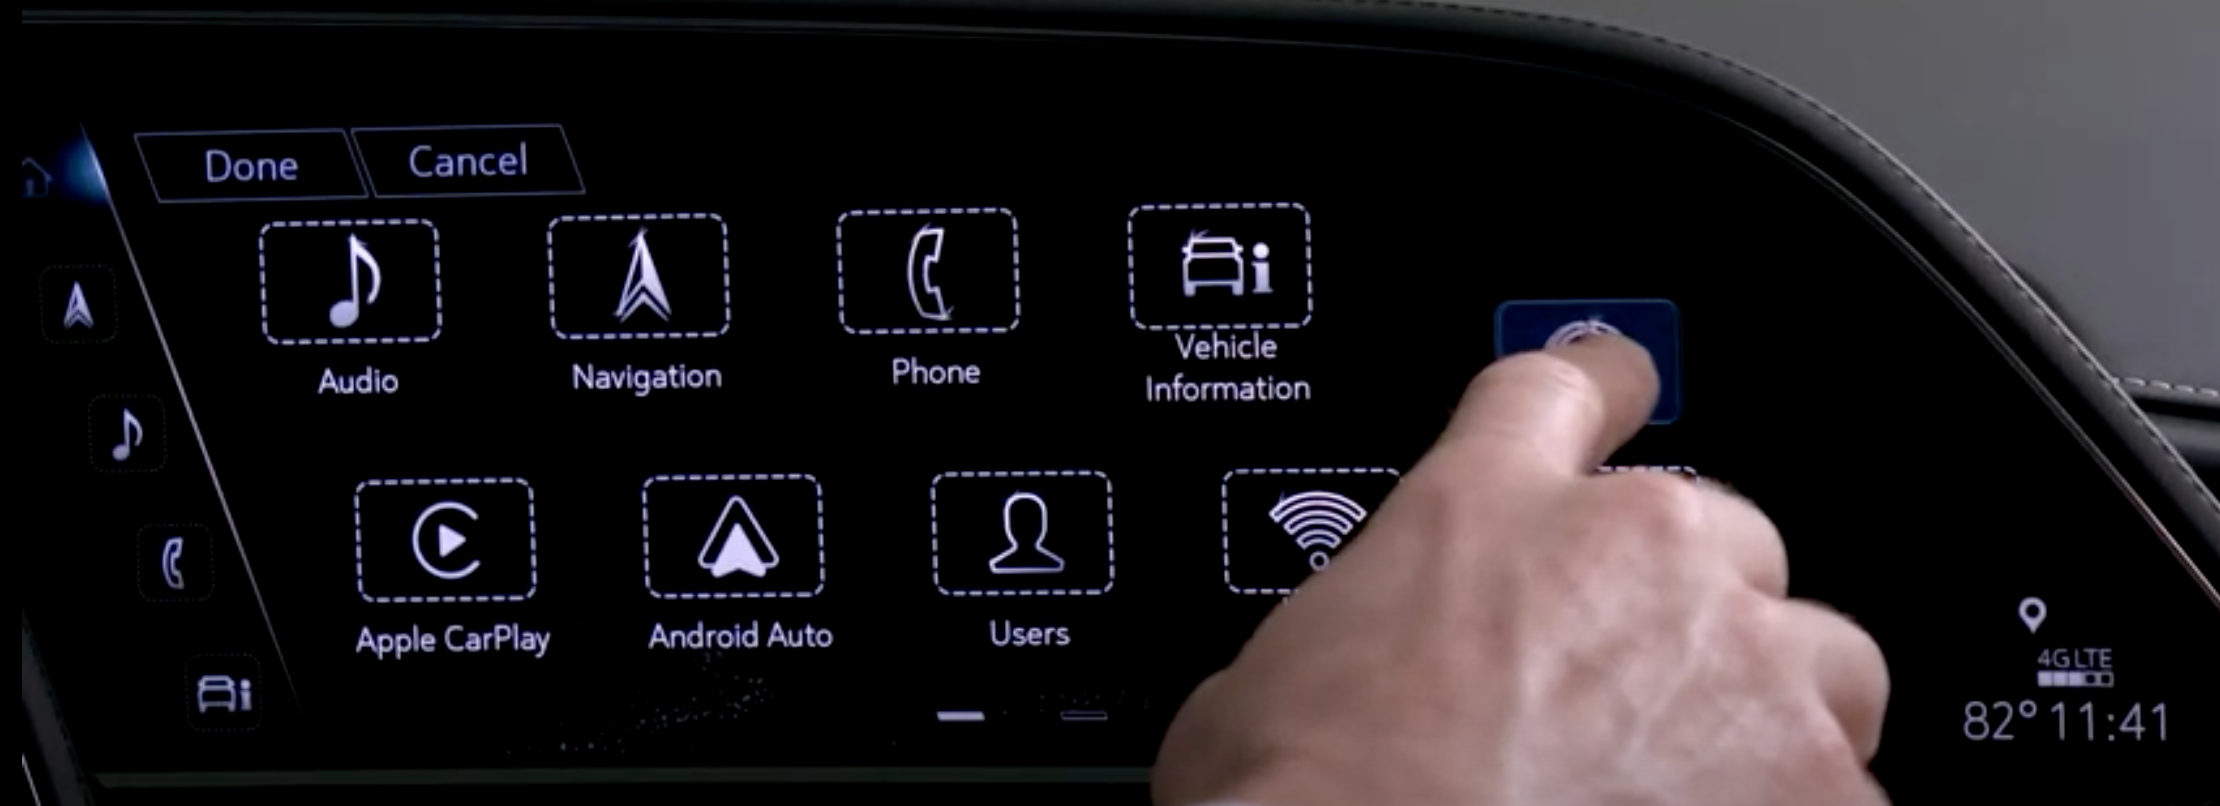 A user customizing the order of apps on the infotainment screen by dragging them to the desired location